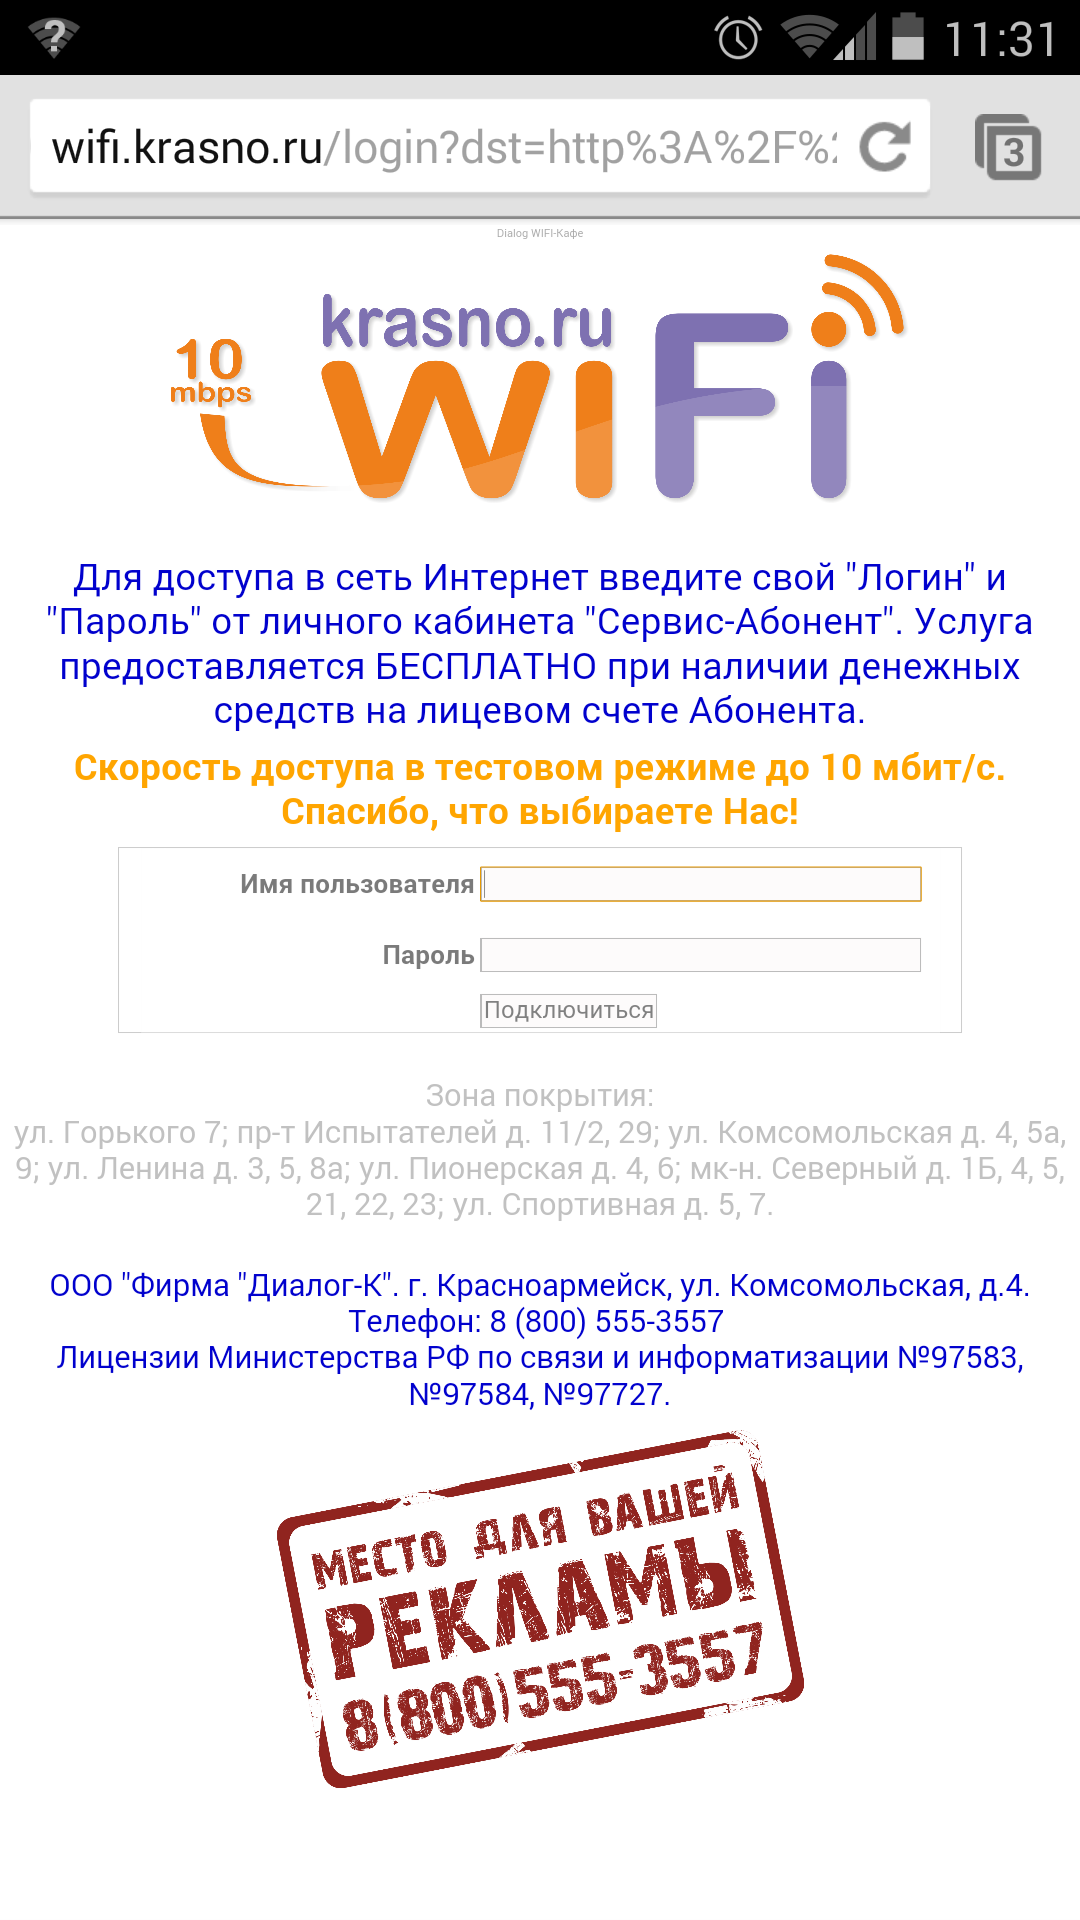 Screenshot_2014-06-06-11-31-34.png